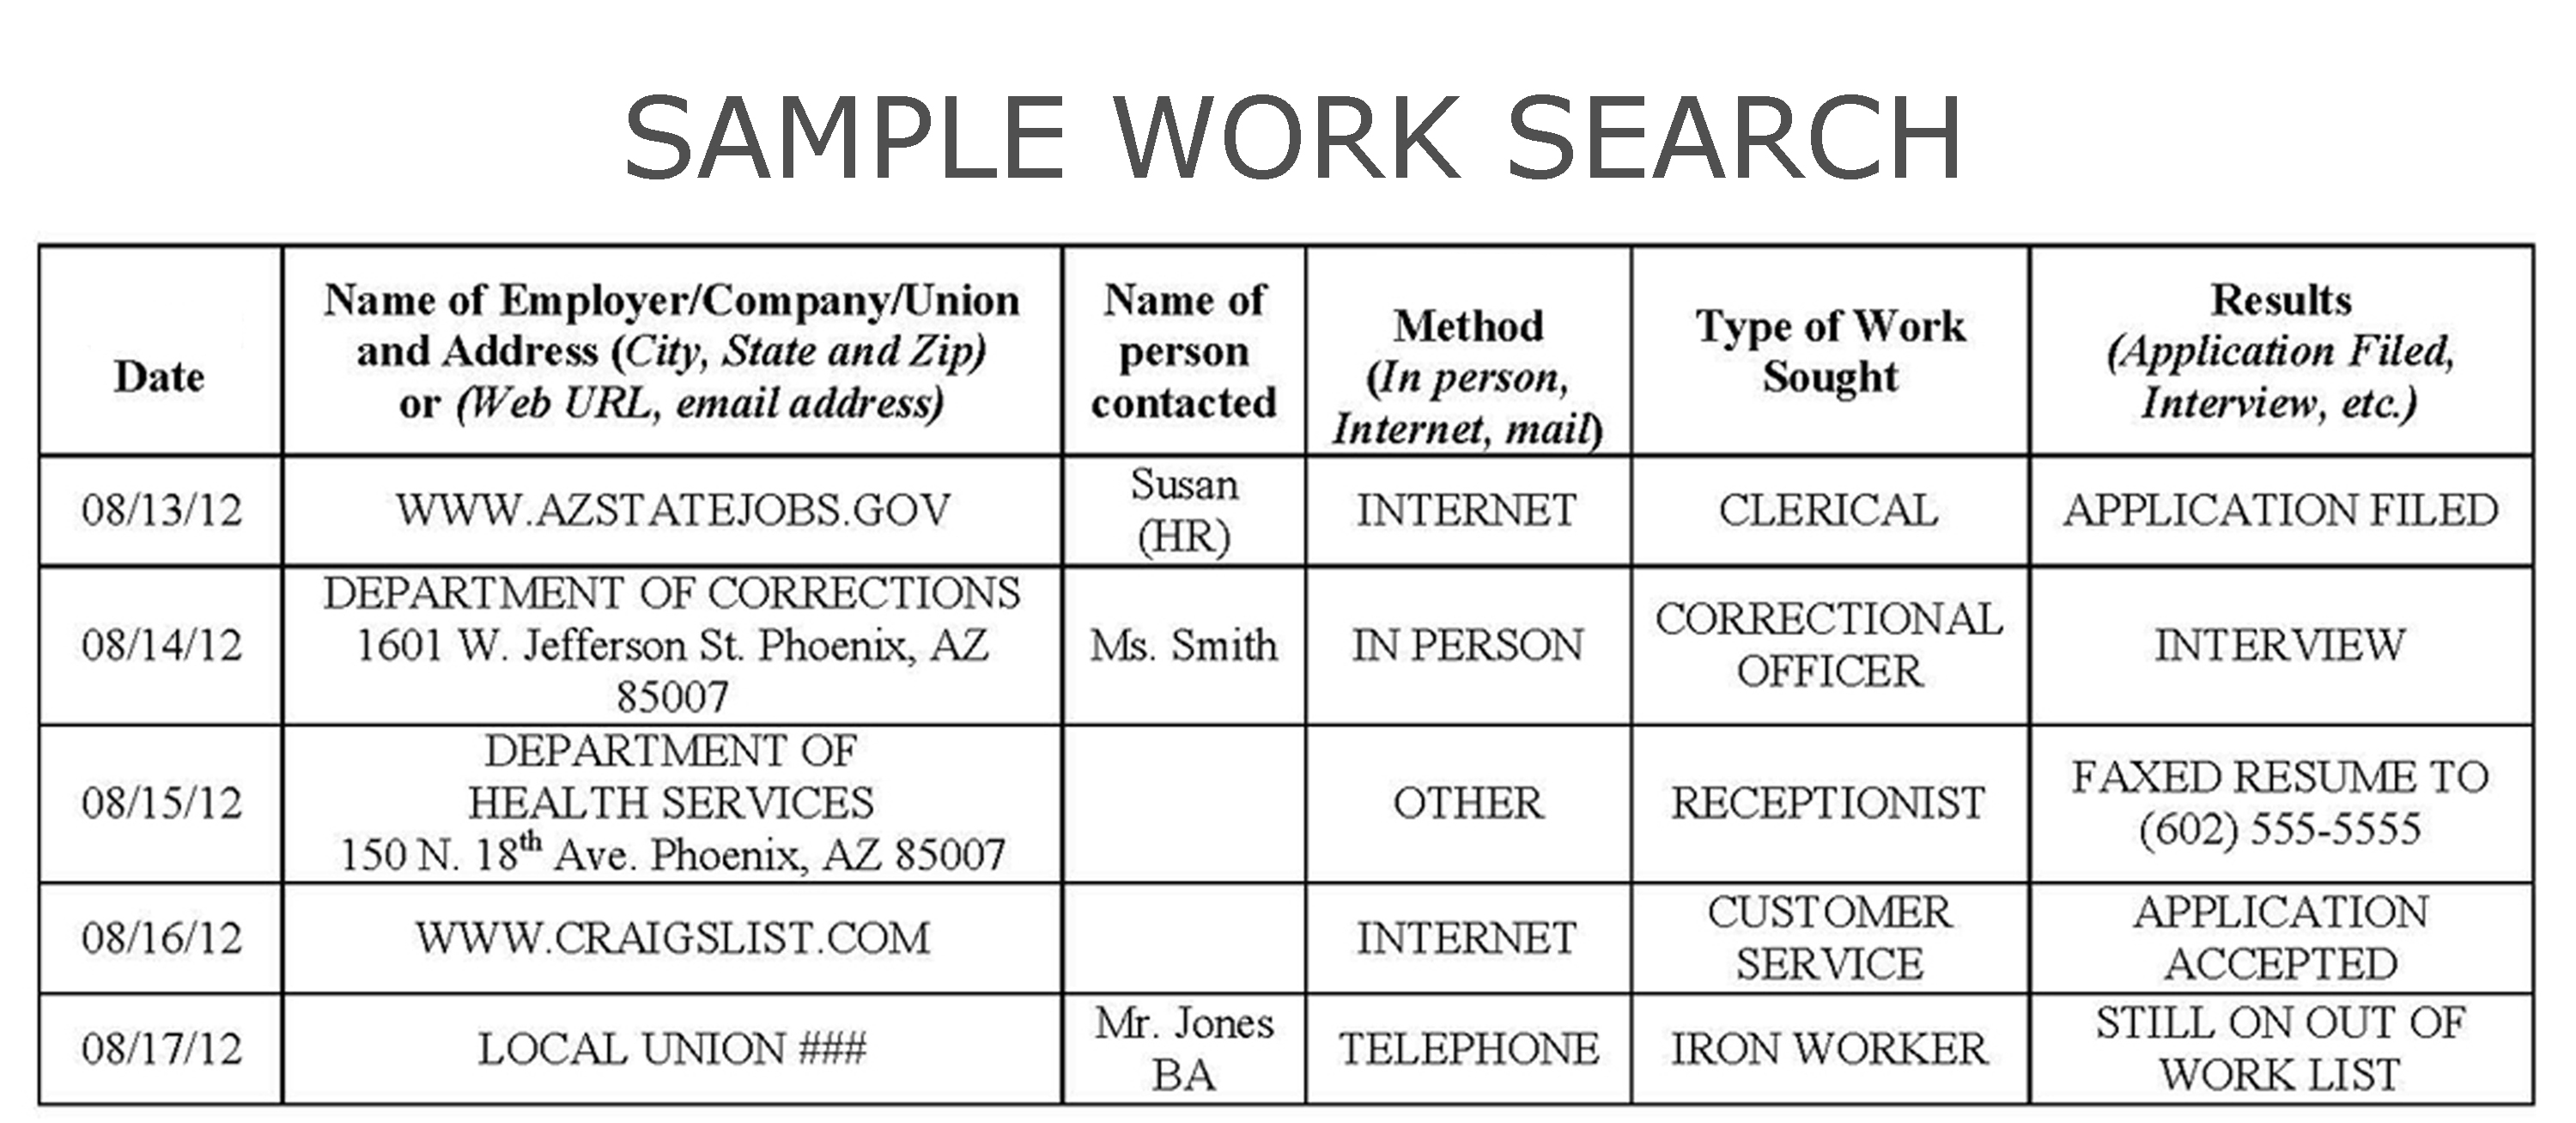 Sample Work Search